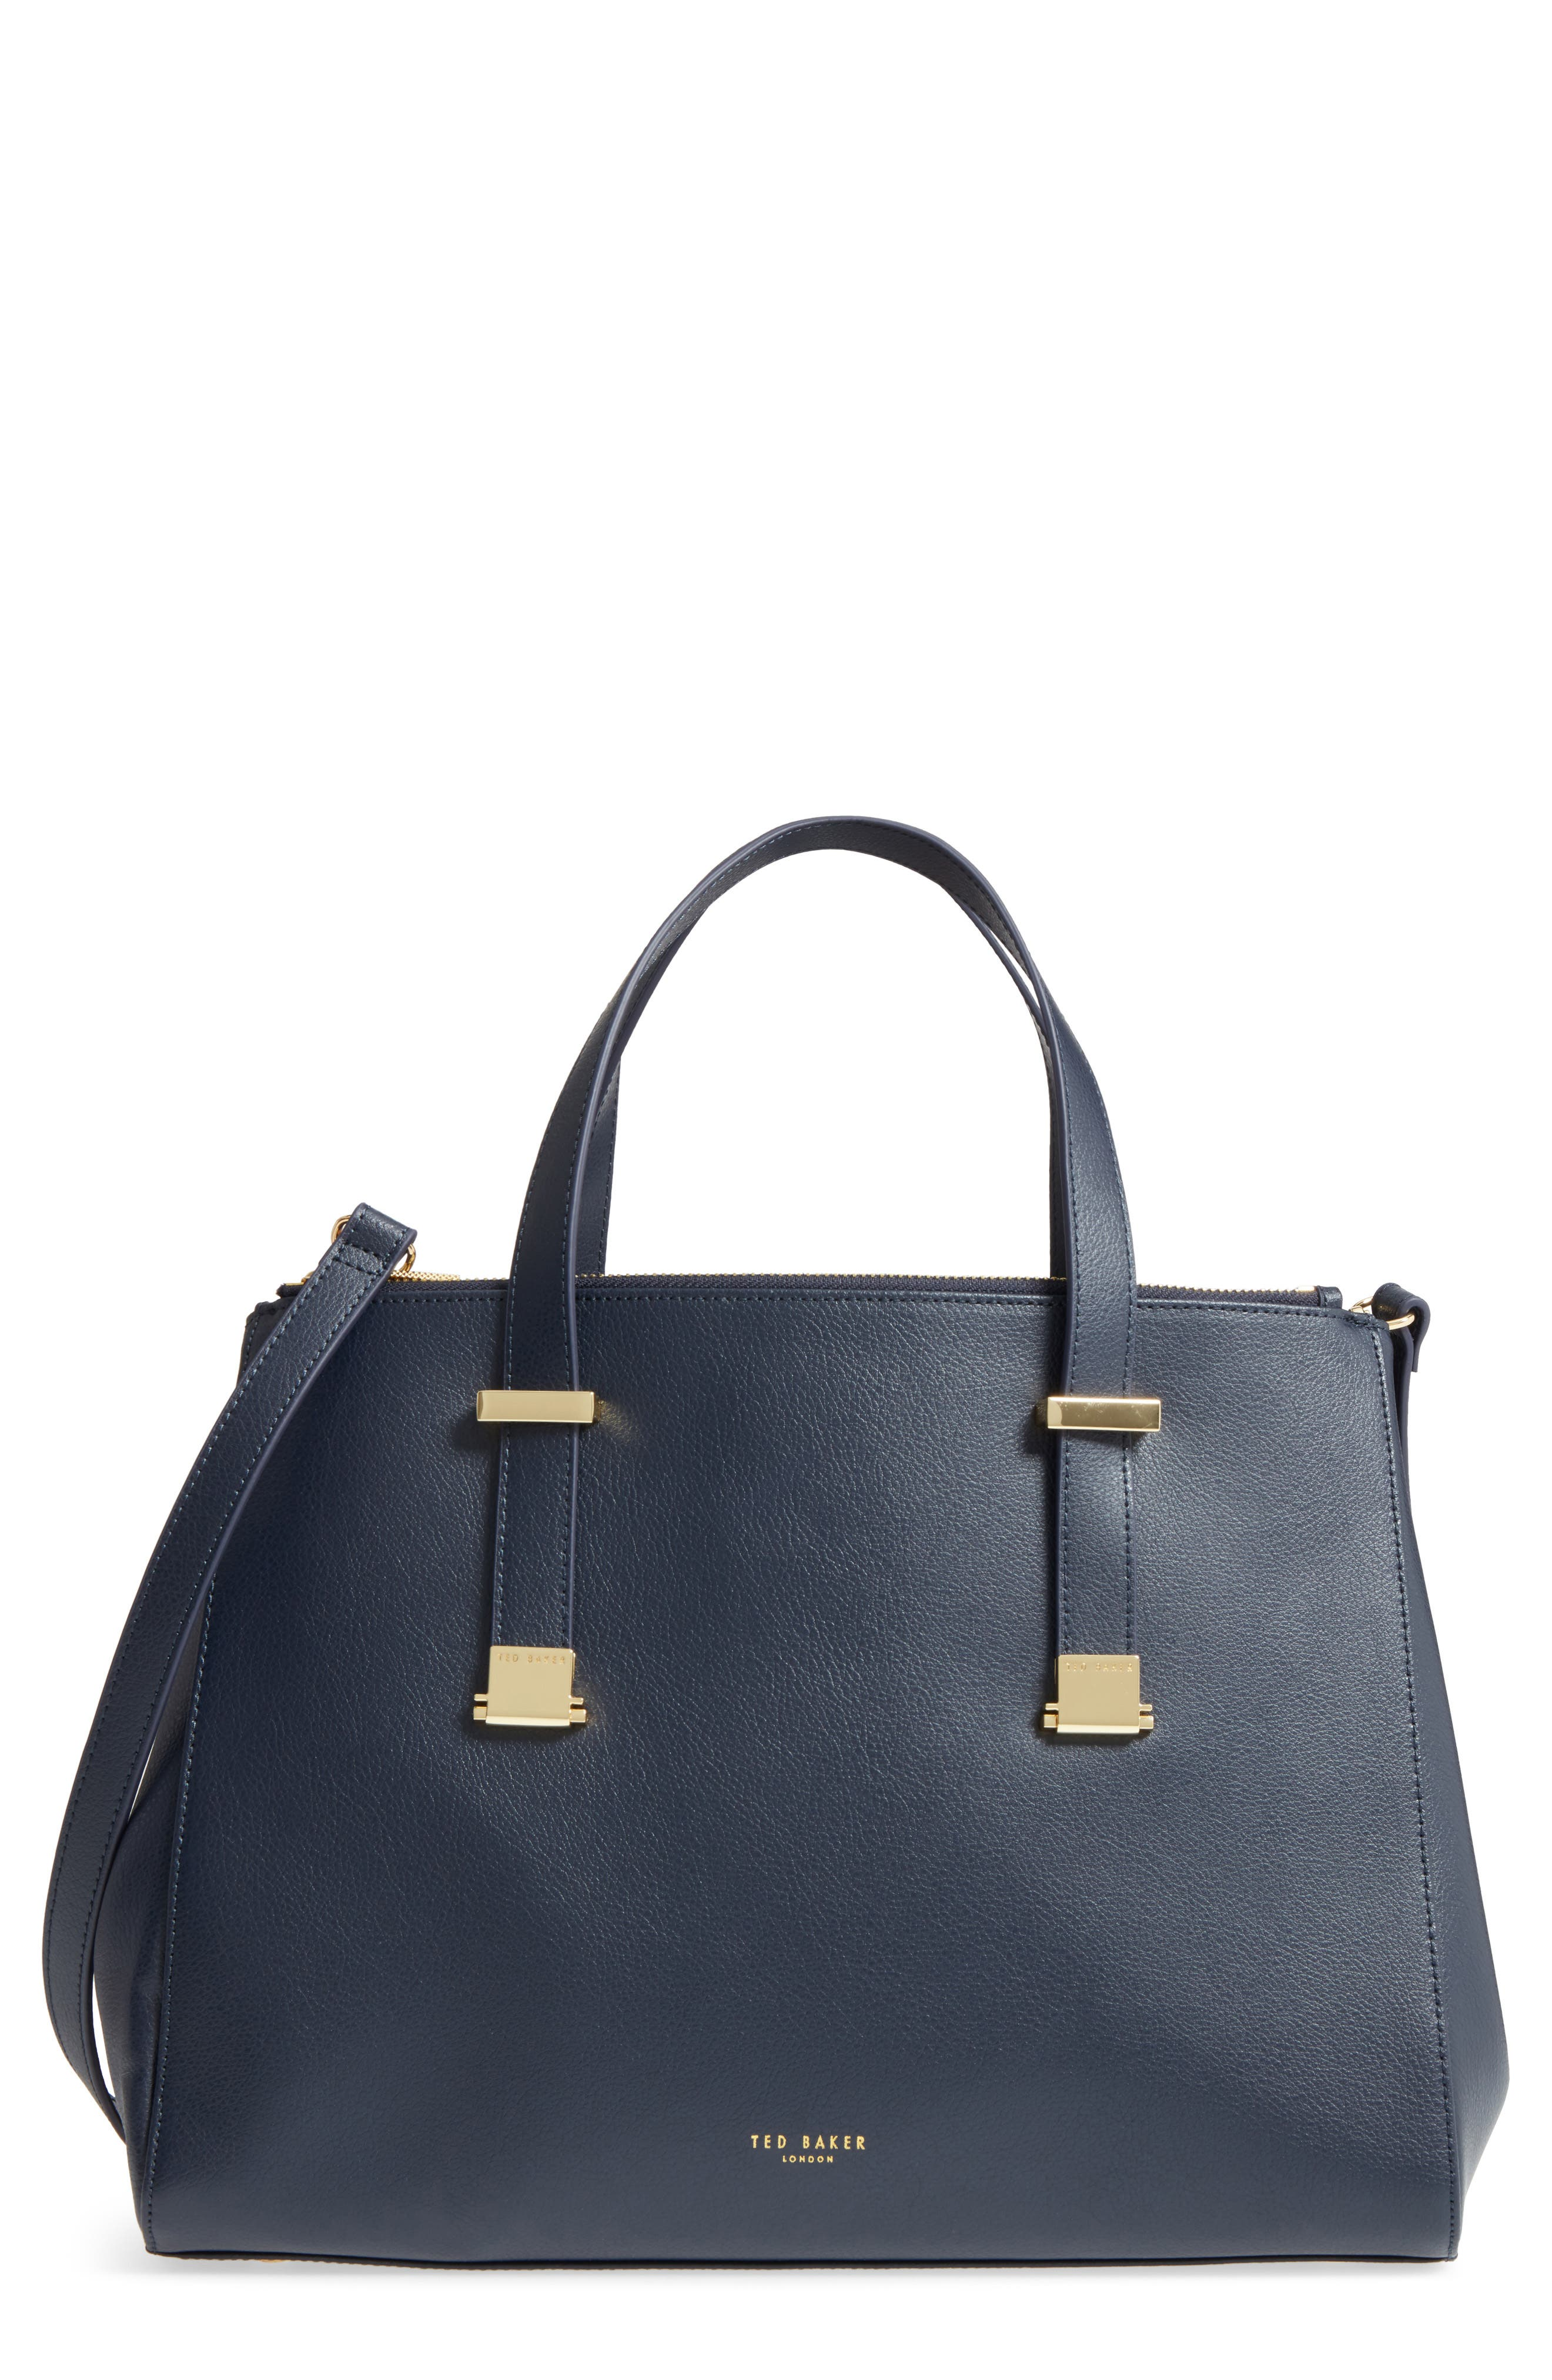 Main Image - Ted Baker London Large Alunaa Convertible Leather Tote